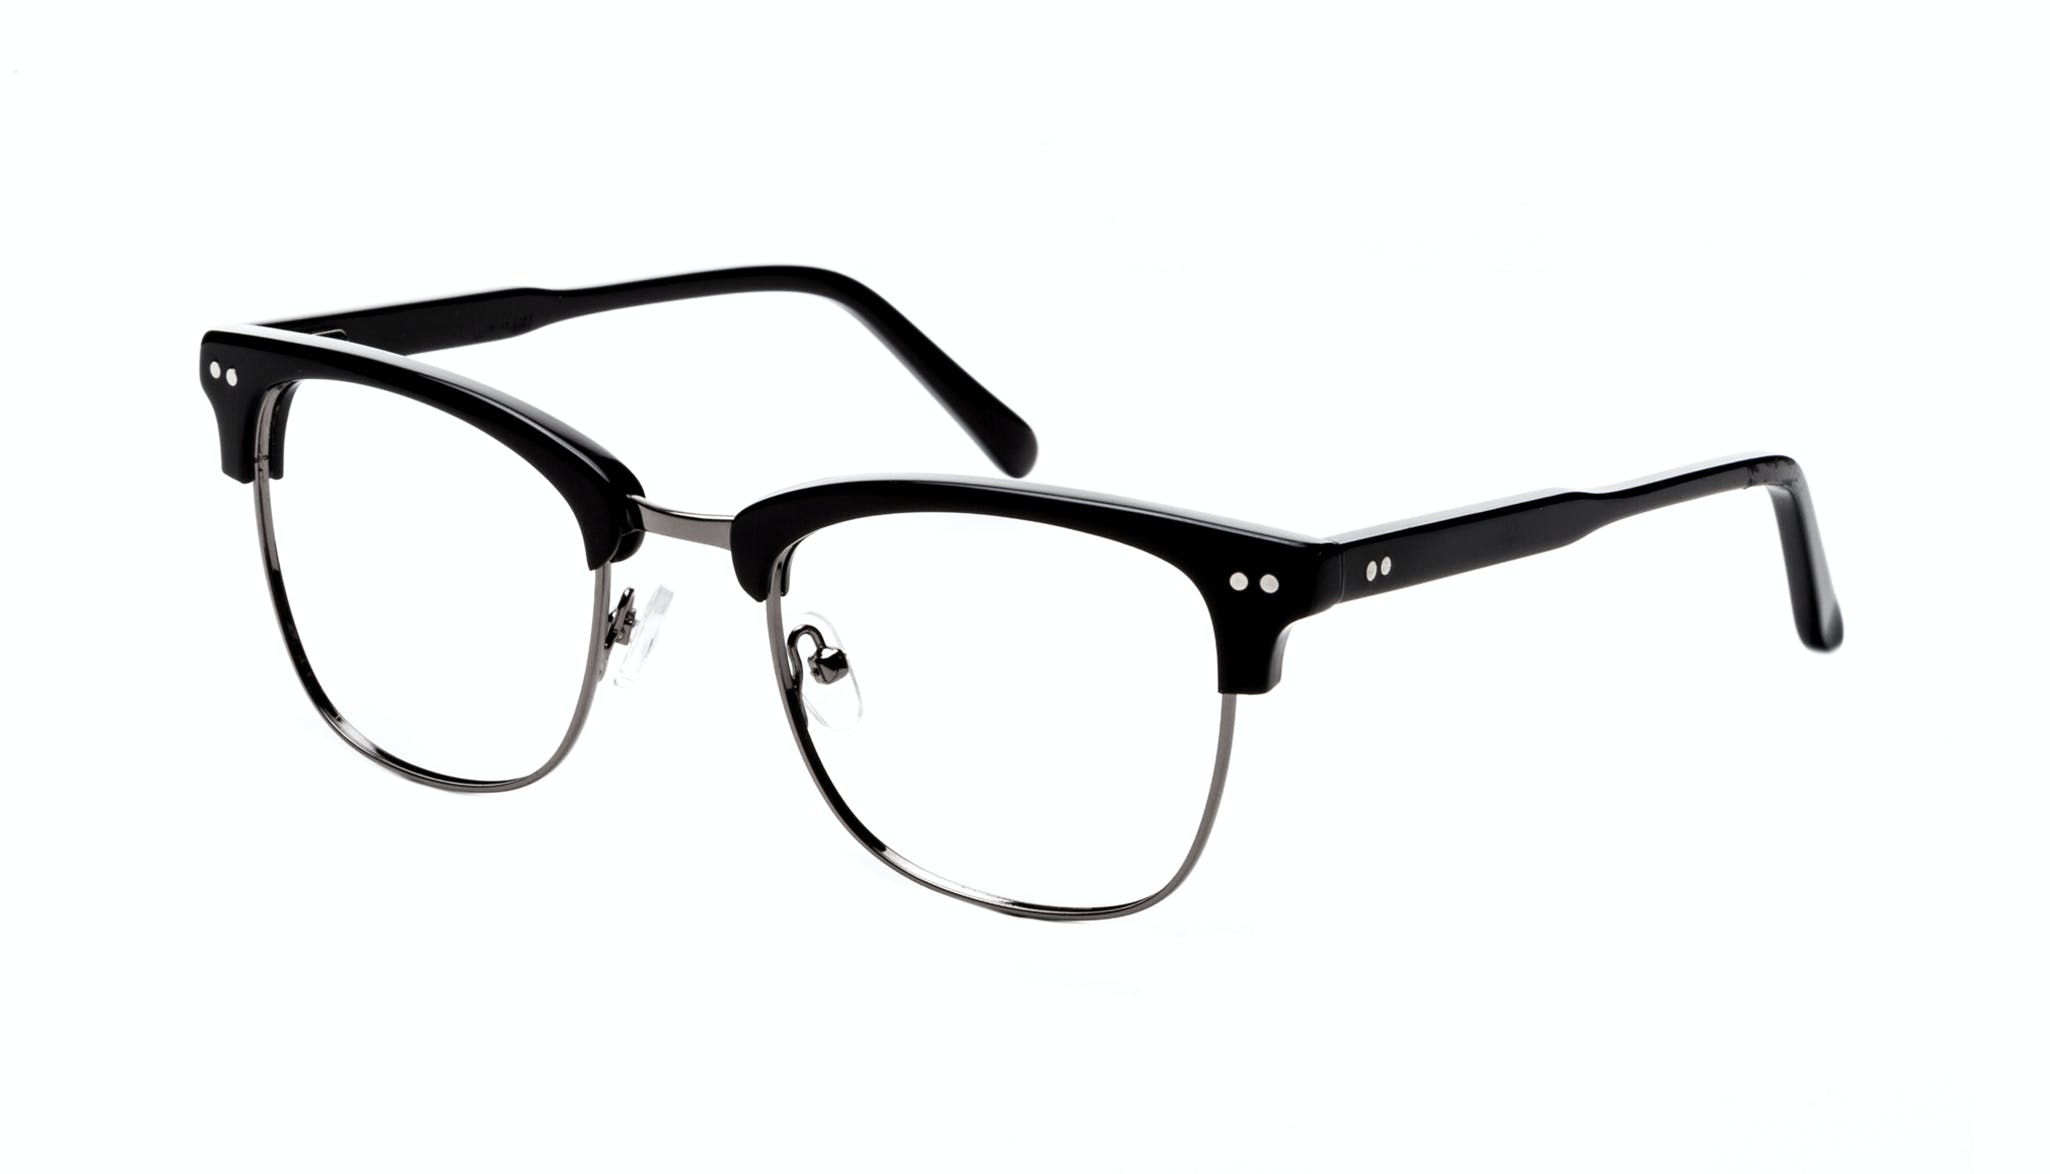 Affordable Fashion Glasses Square Eyeglasses Men Lift Onyx Tilt